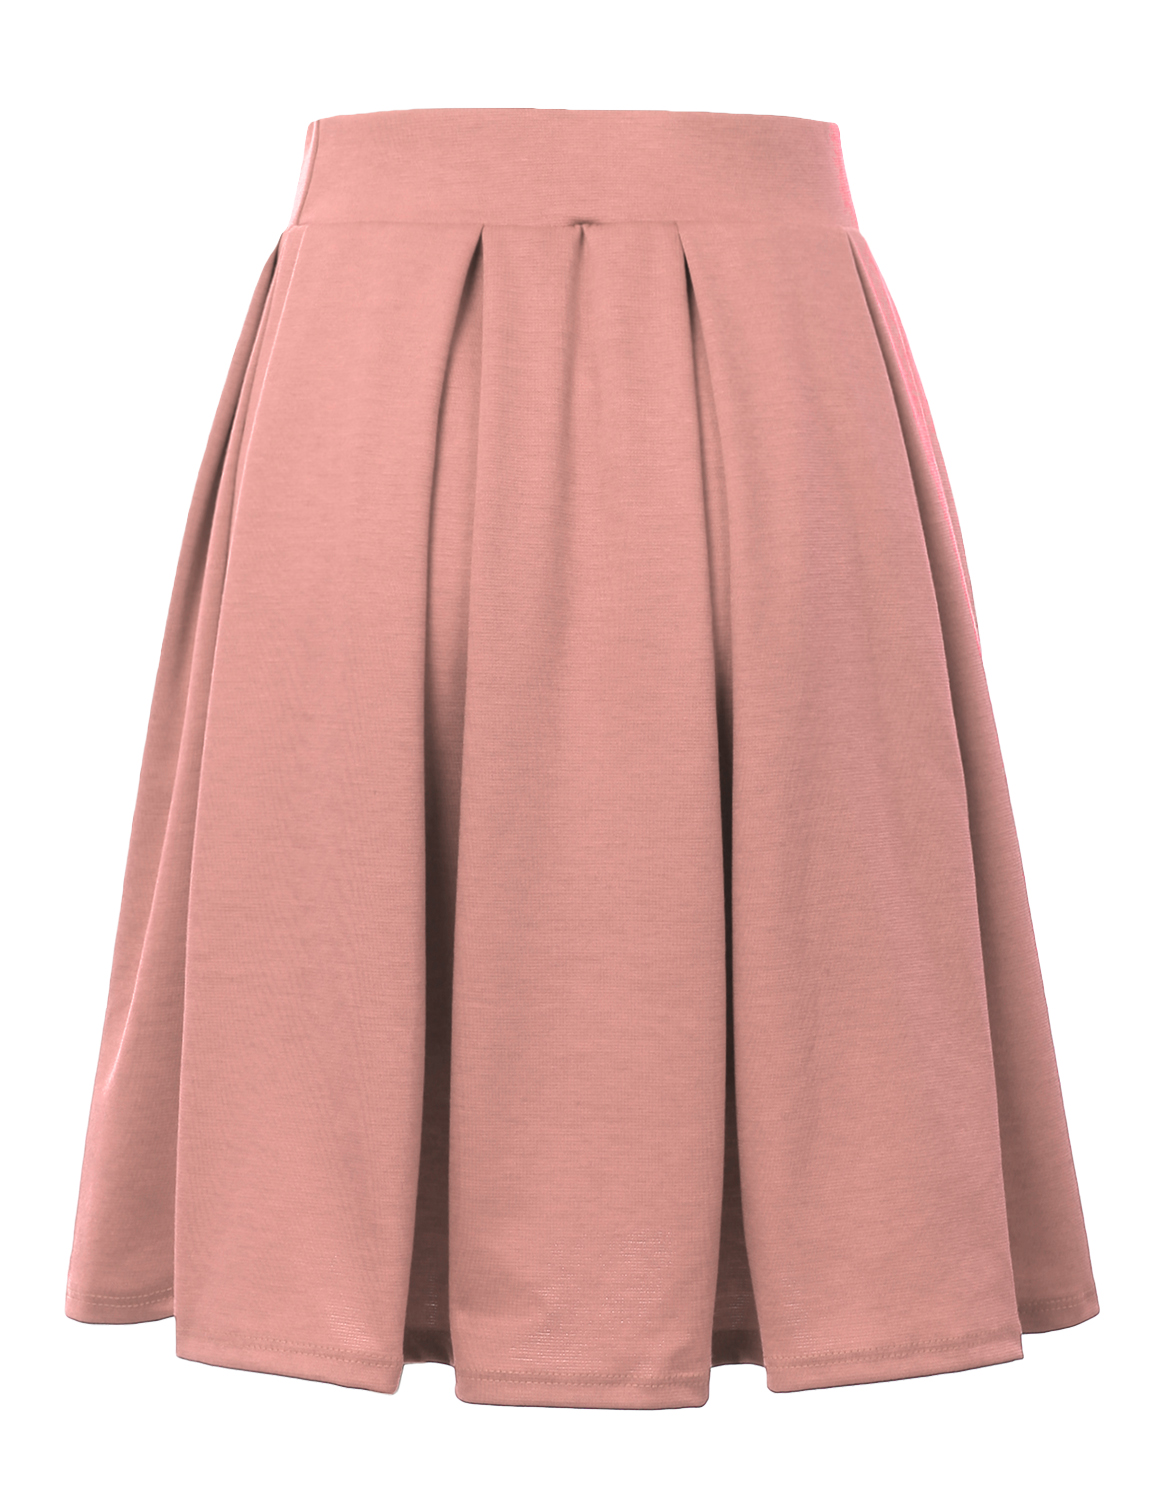 Doublju-Elastic-Waist-Flare-Pleated-Skater-Midi-Skirt-for-Women-with-Plus-Size thumbnail 12